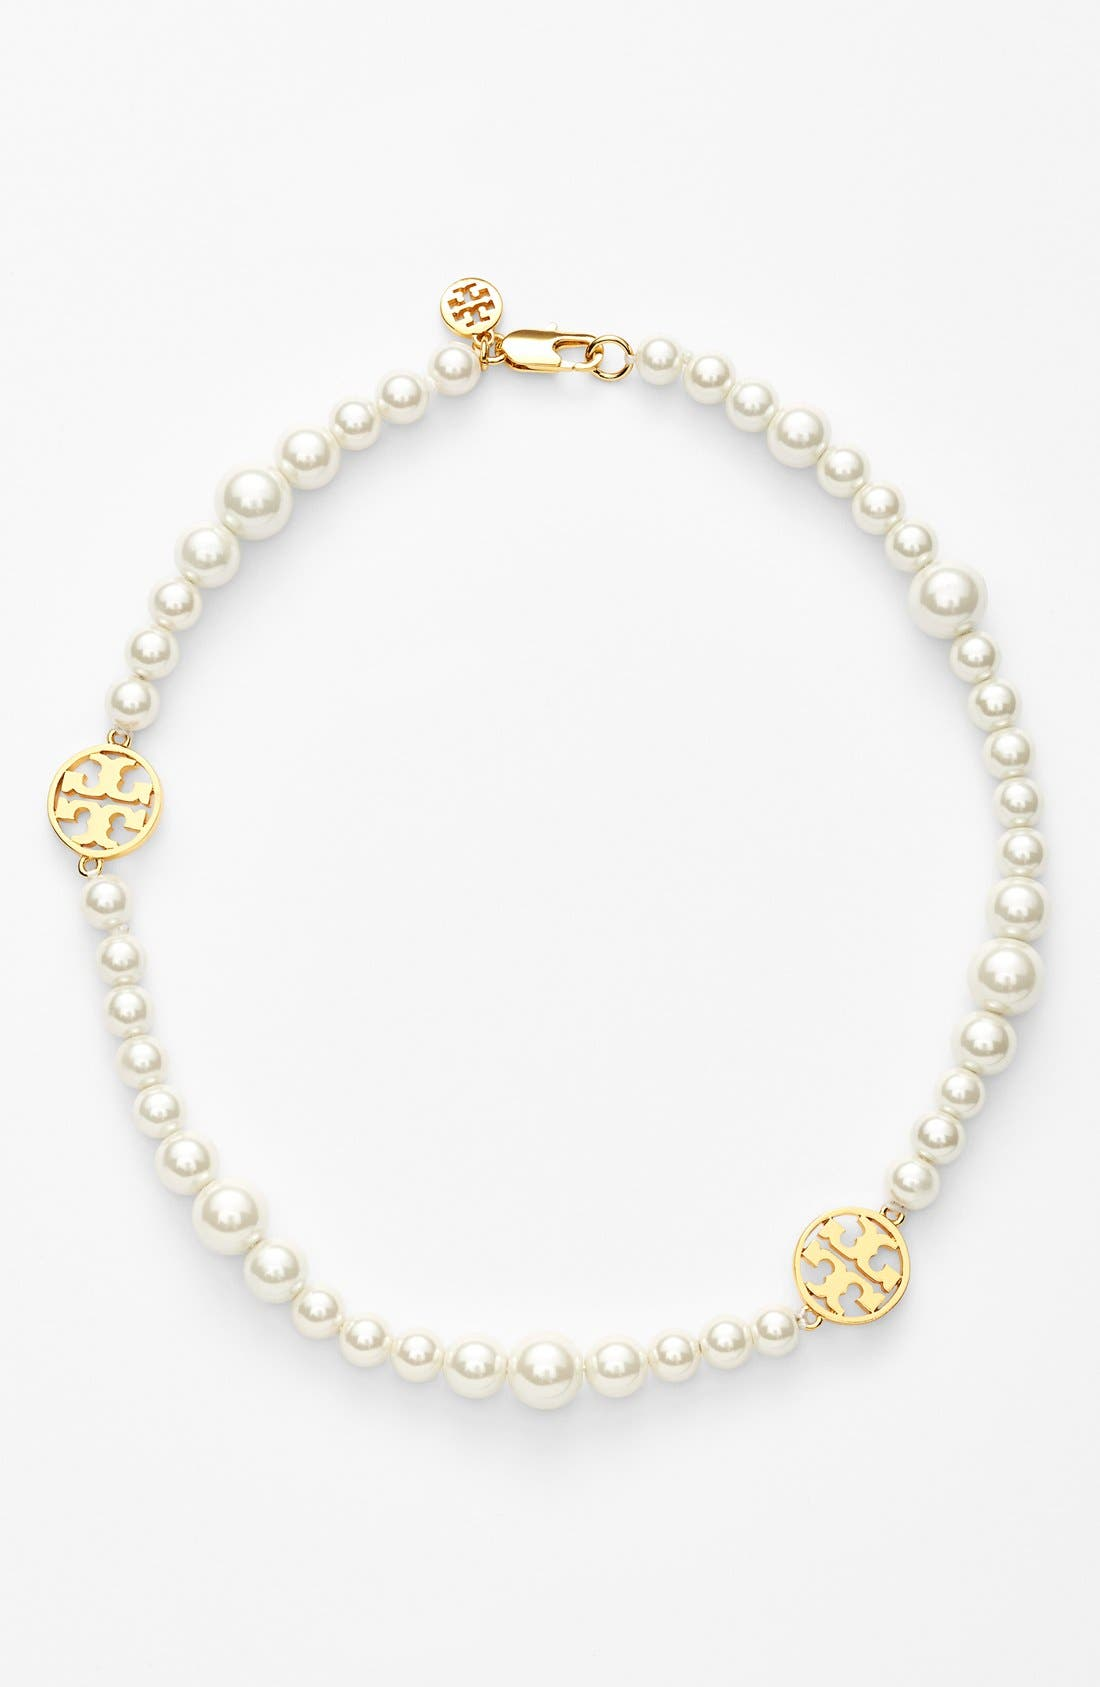 Alternate Image 1 Selected - Tory Burch 'Evie' Logo & Glass Pearl Collar Necklace